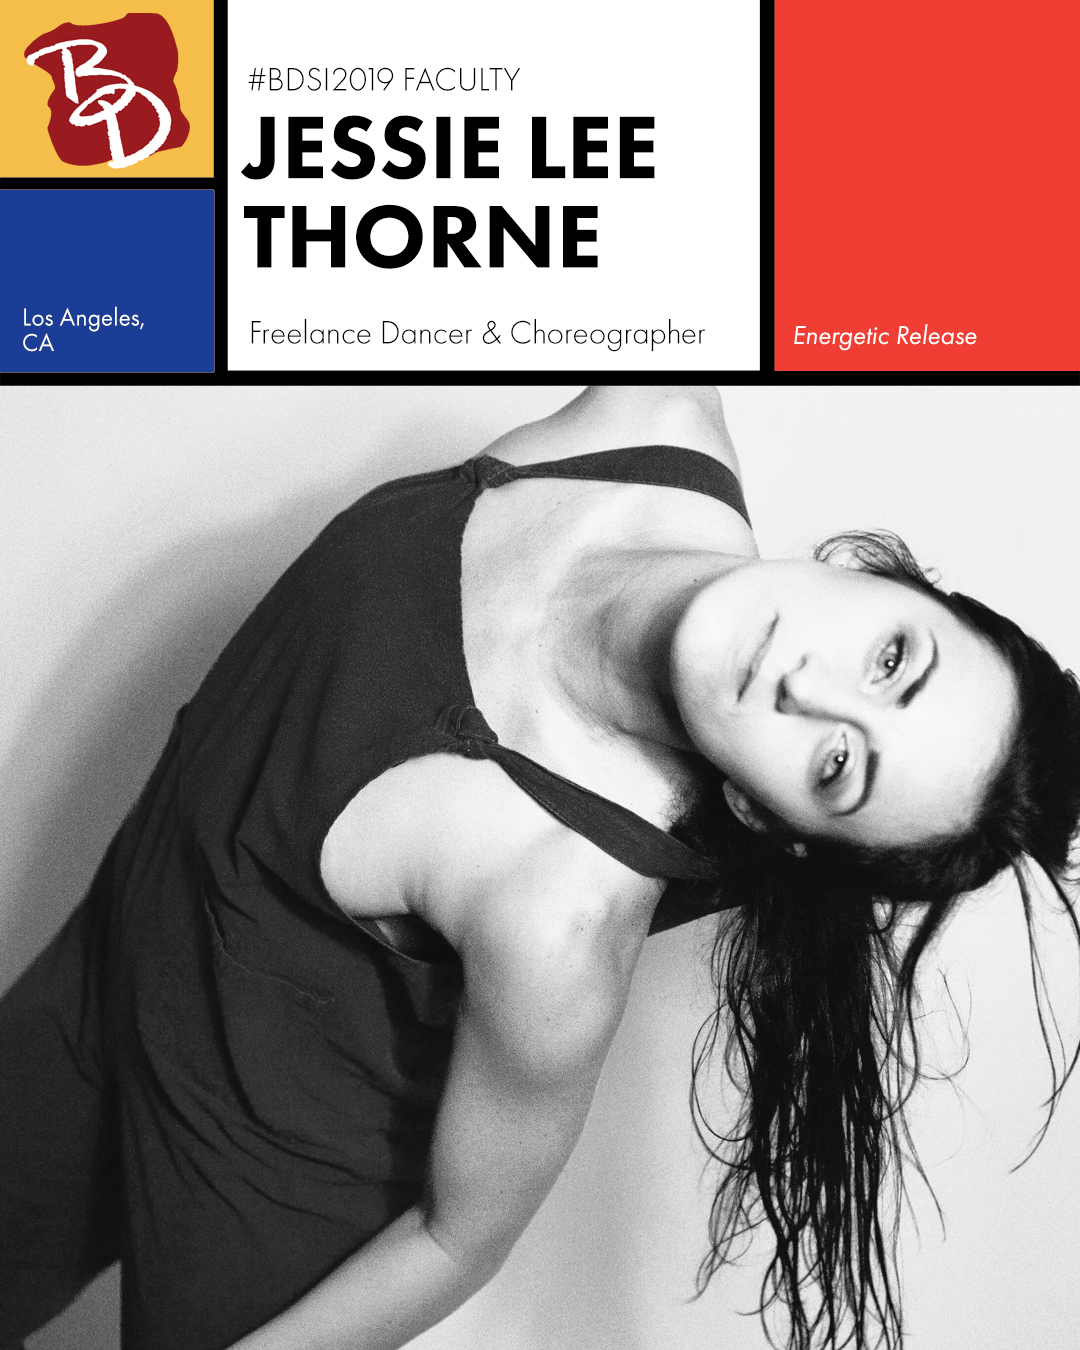 Faculty Announcement - Thorne Jessie Lee.jpg